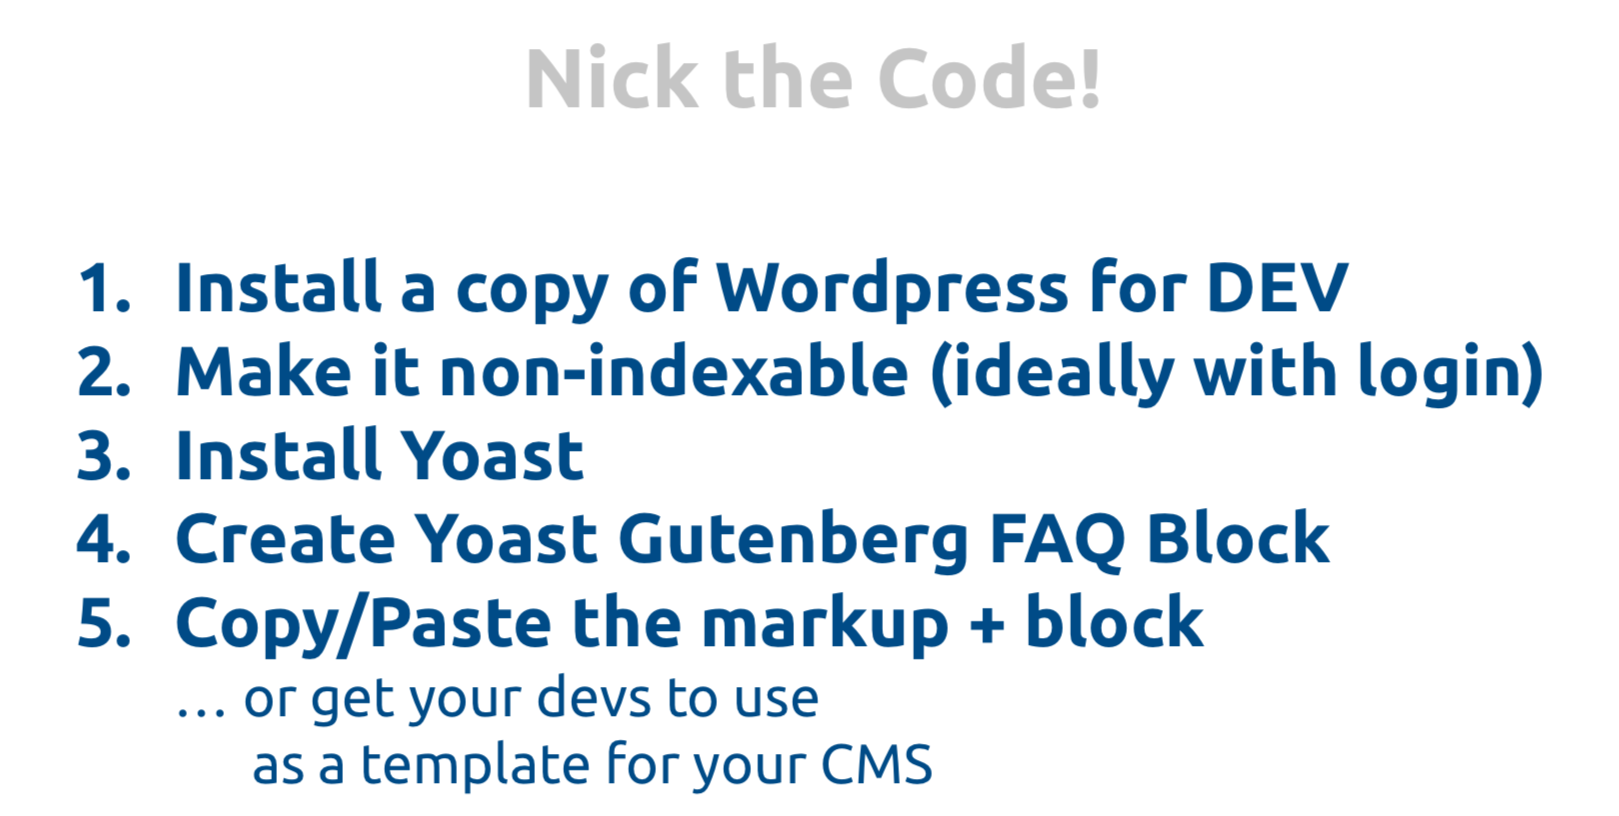 Implementing Yoast Gutenberg FAQ Block